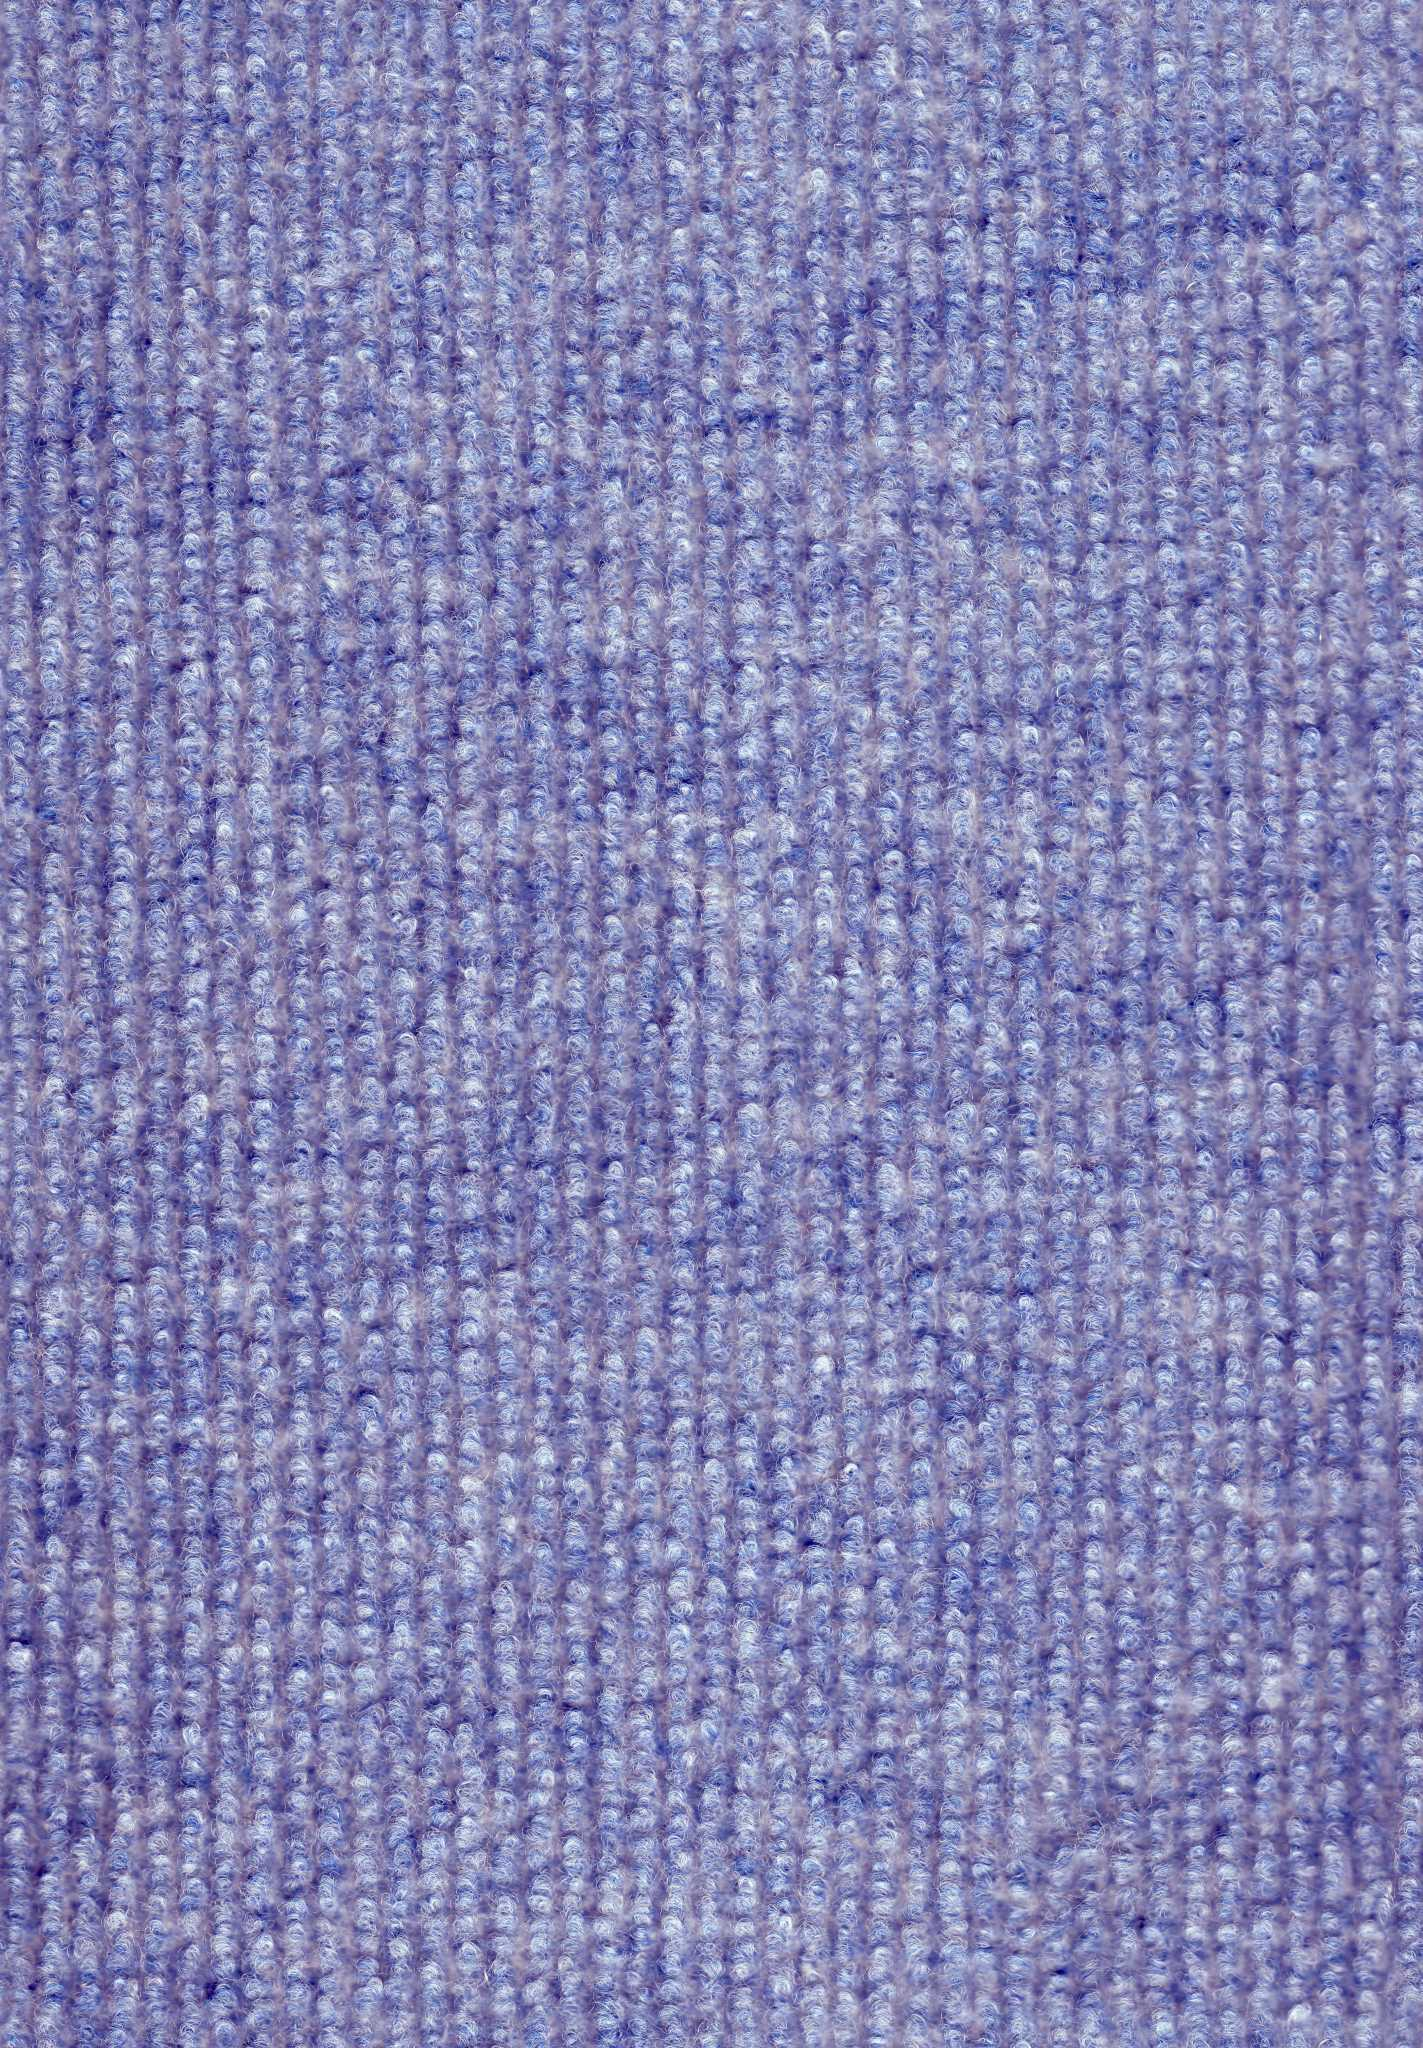 Carpet Texture Blue Seamless Texture with normalmap